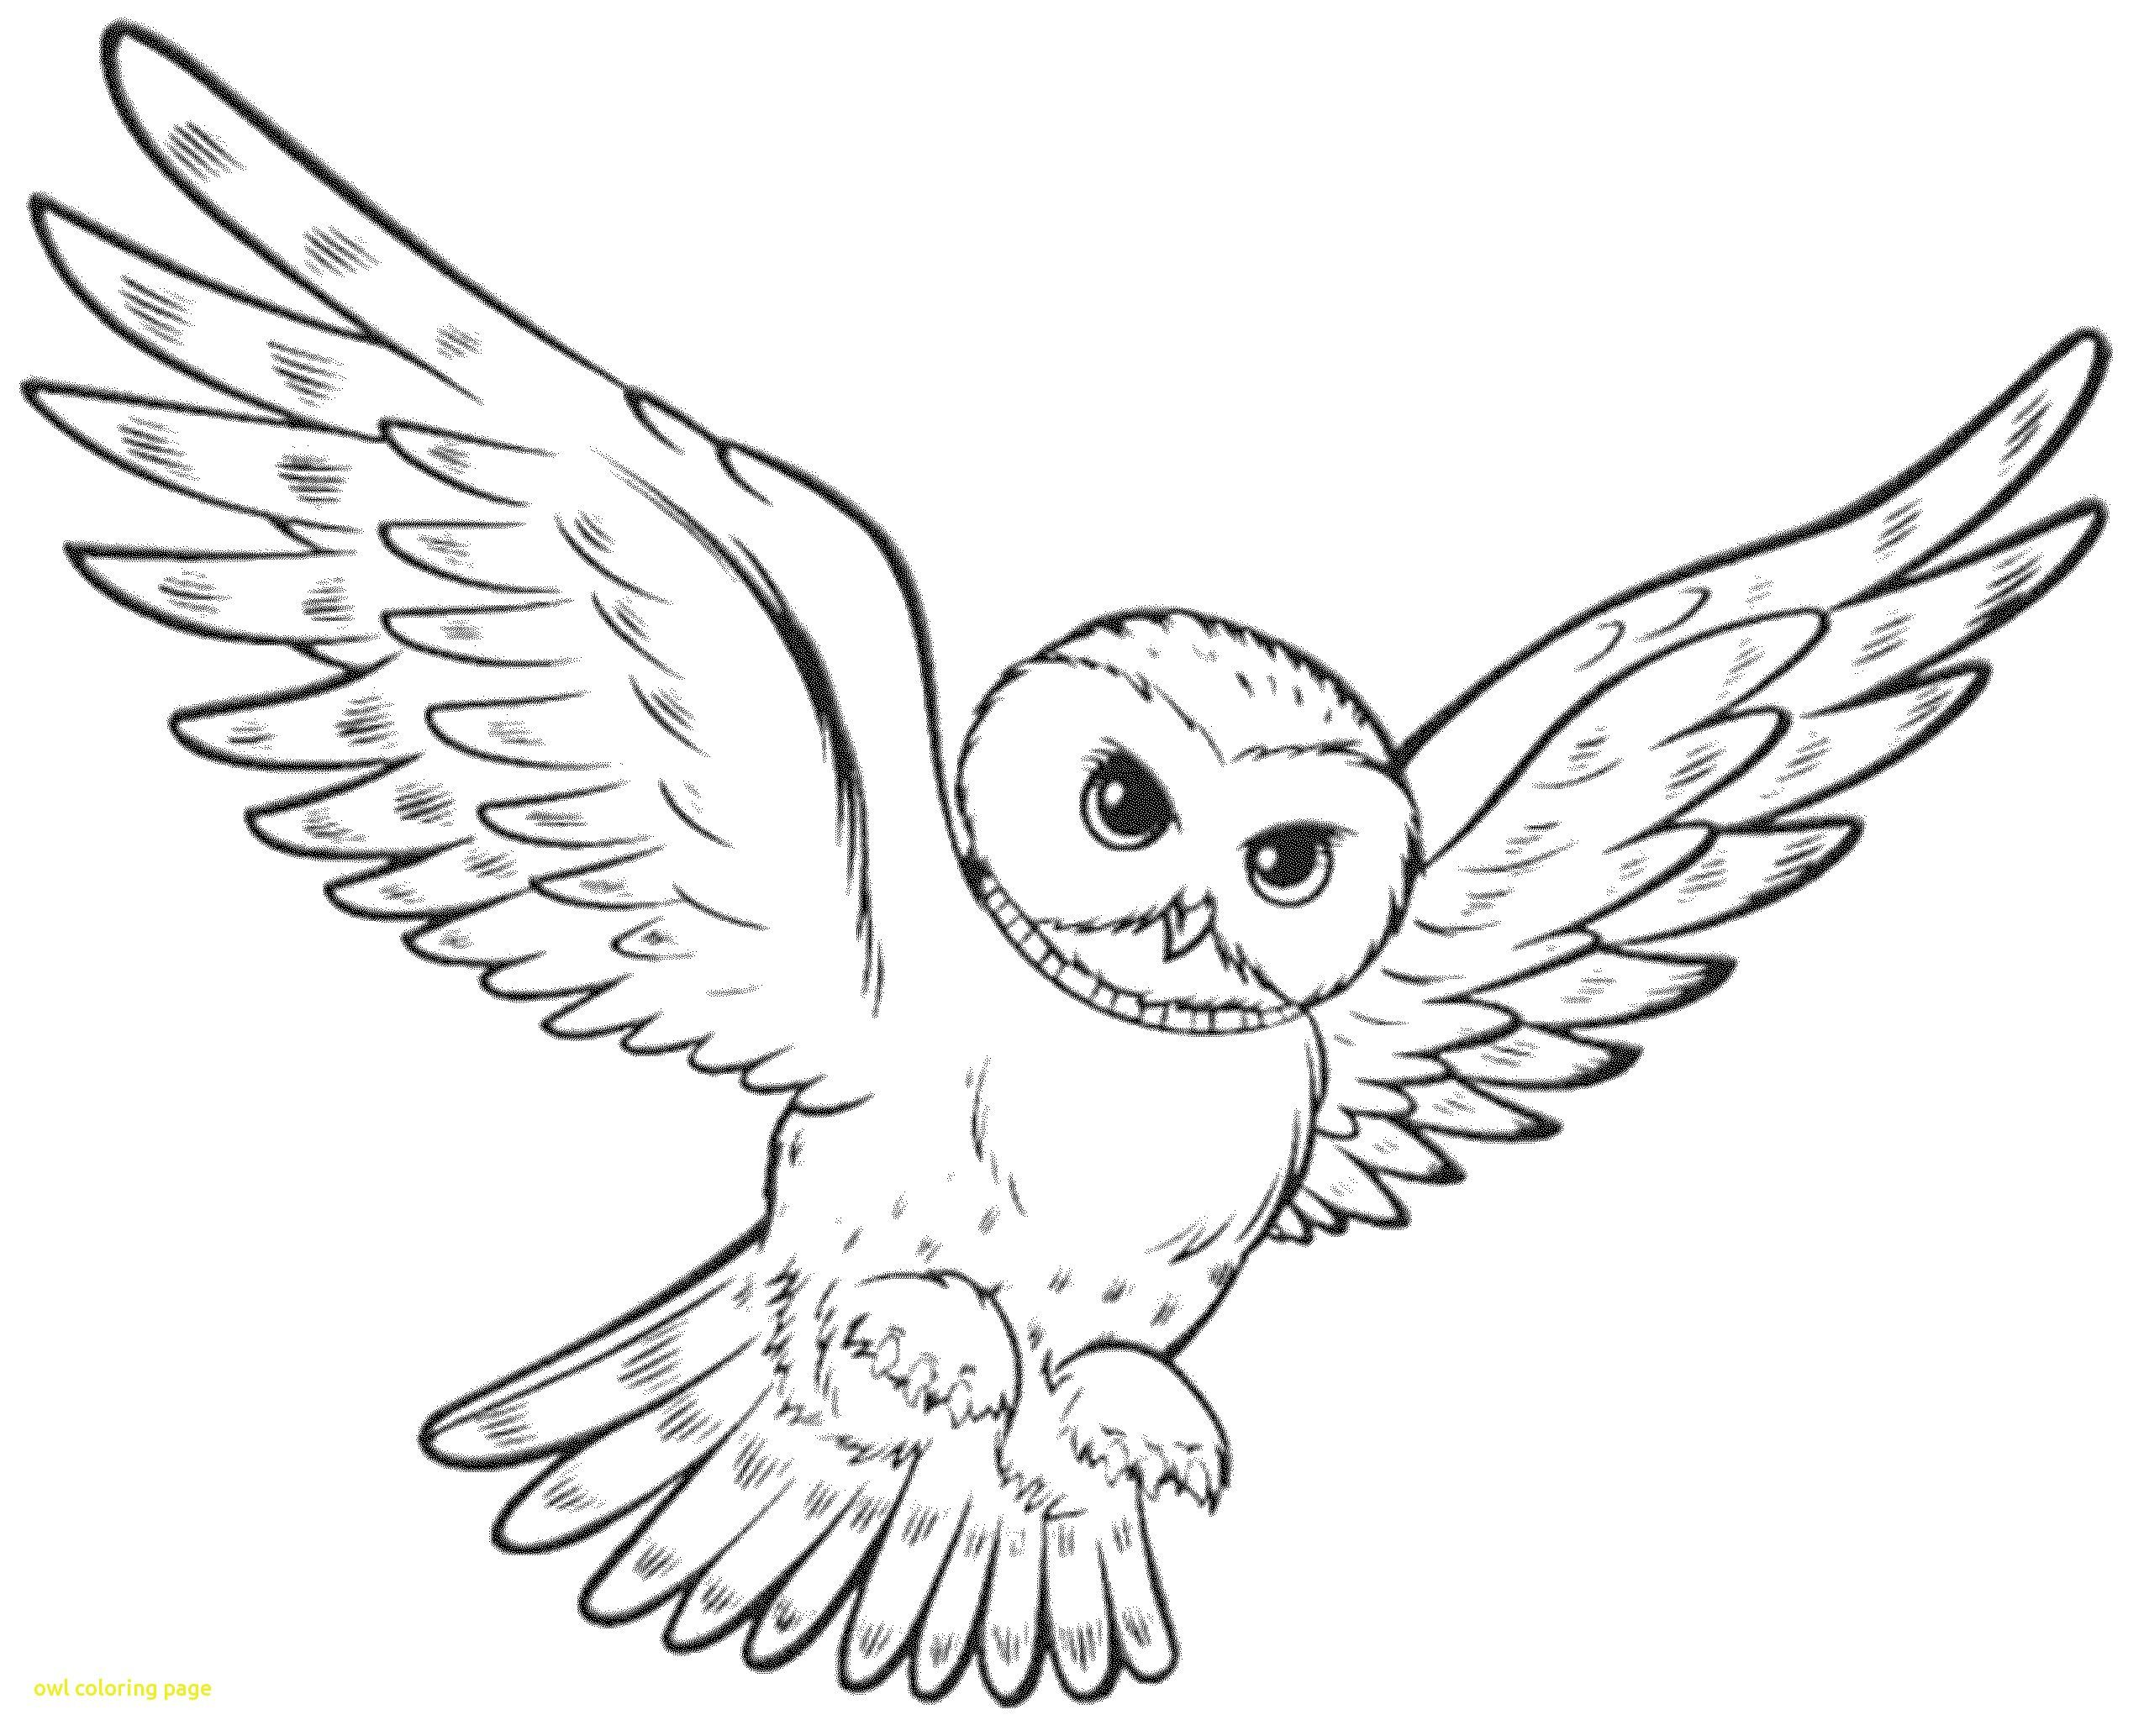 Free Owl Coloring Pages For Adults Owl Coloring Pages Animal Coloring Pages Cute Coloring Pages